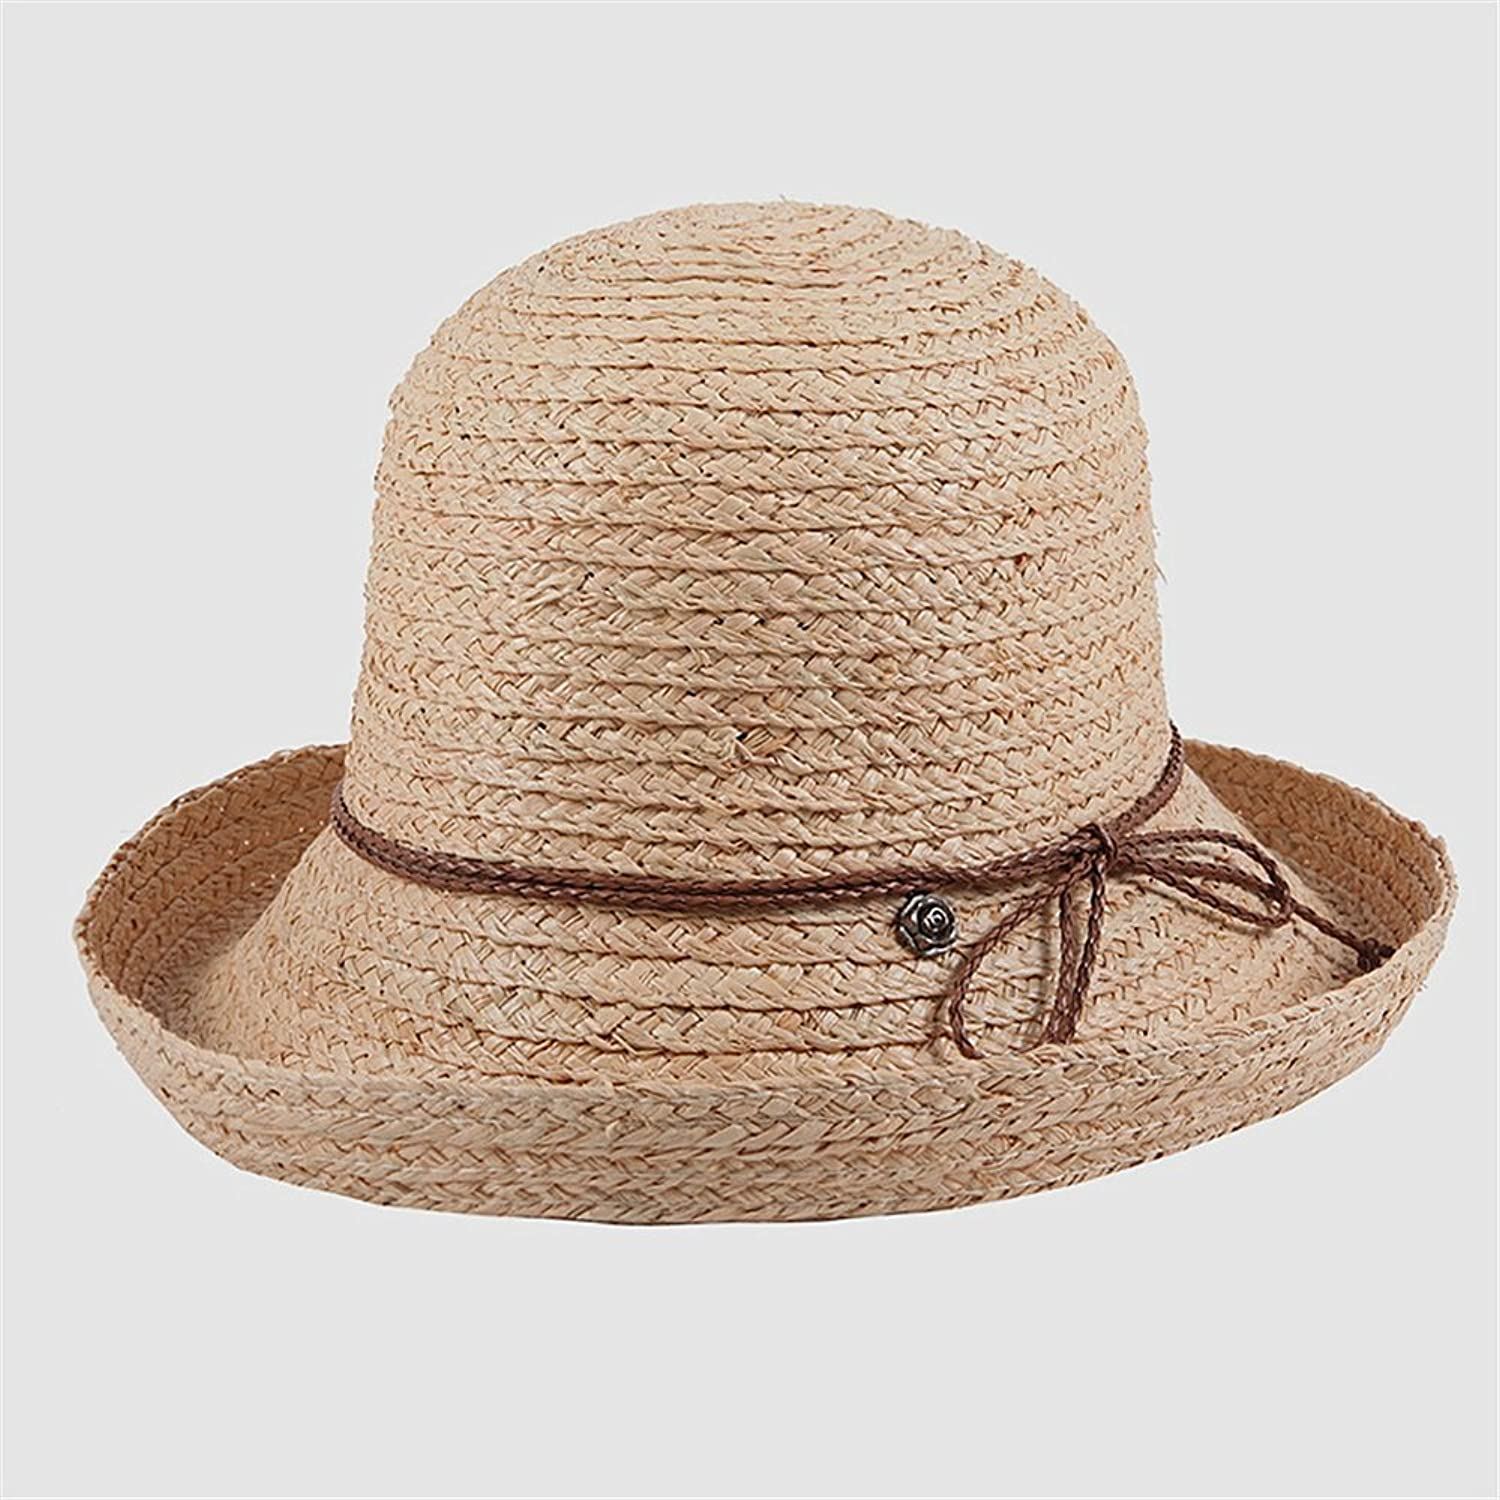 Women's Hat Spring and Summer Sun Predection Sun Hat Big Along The Hat Folding